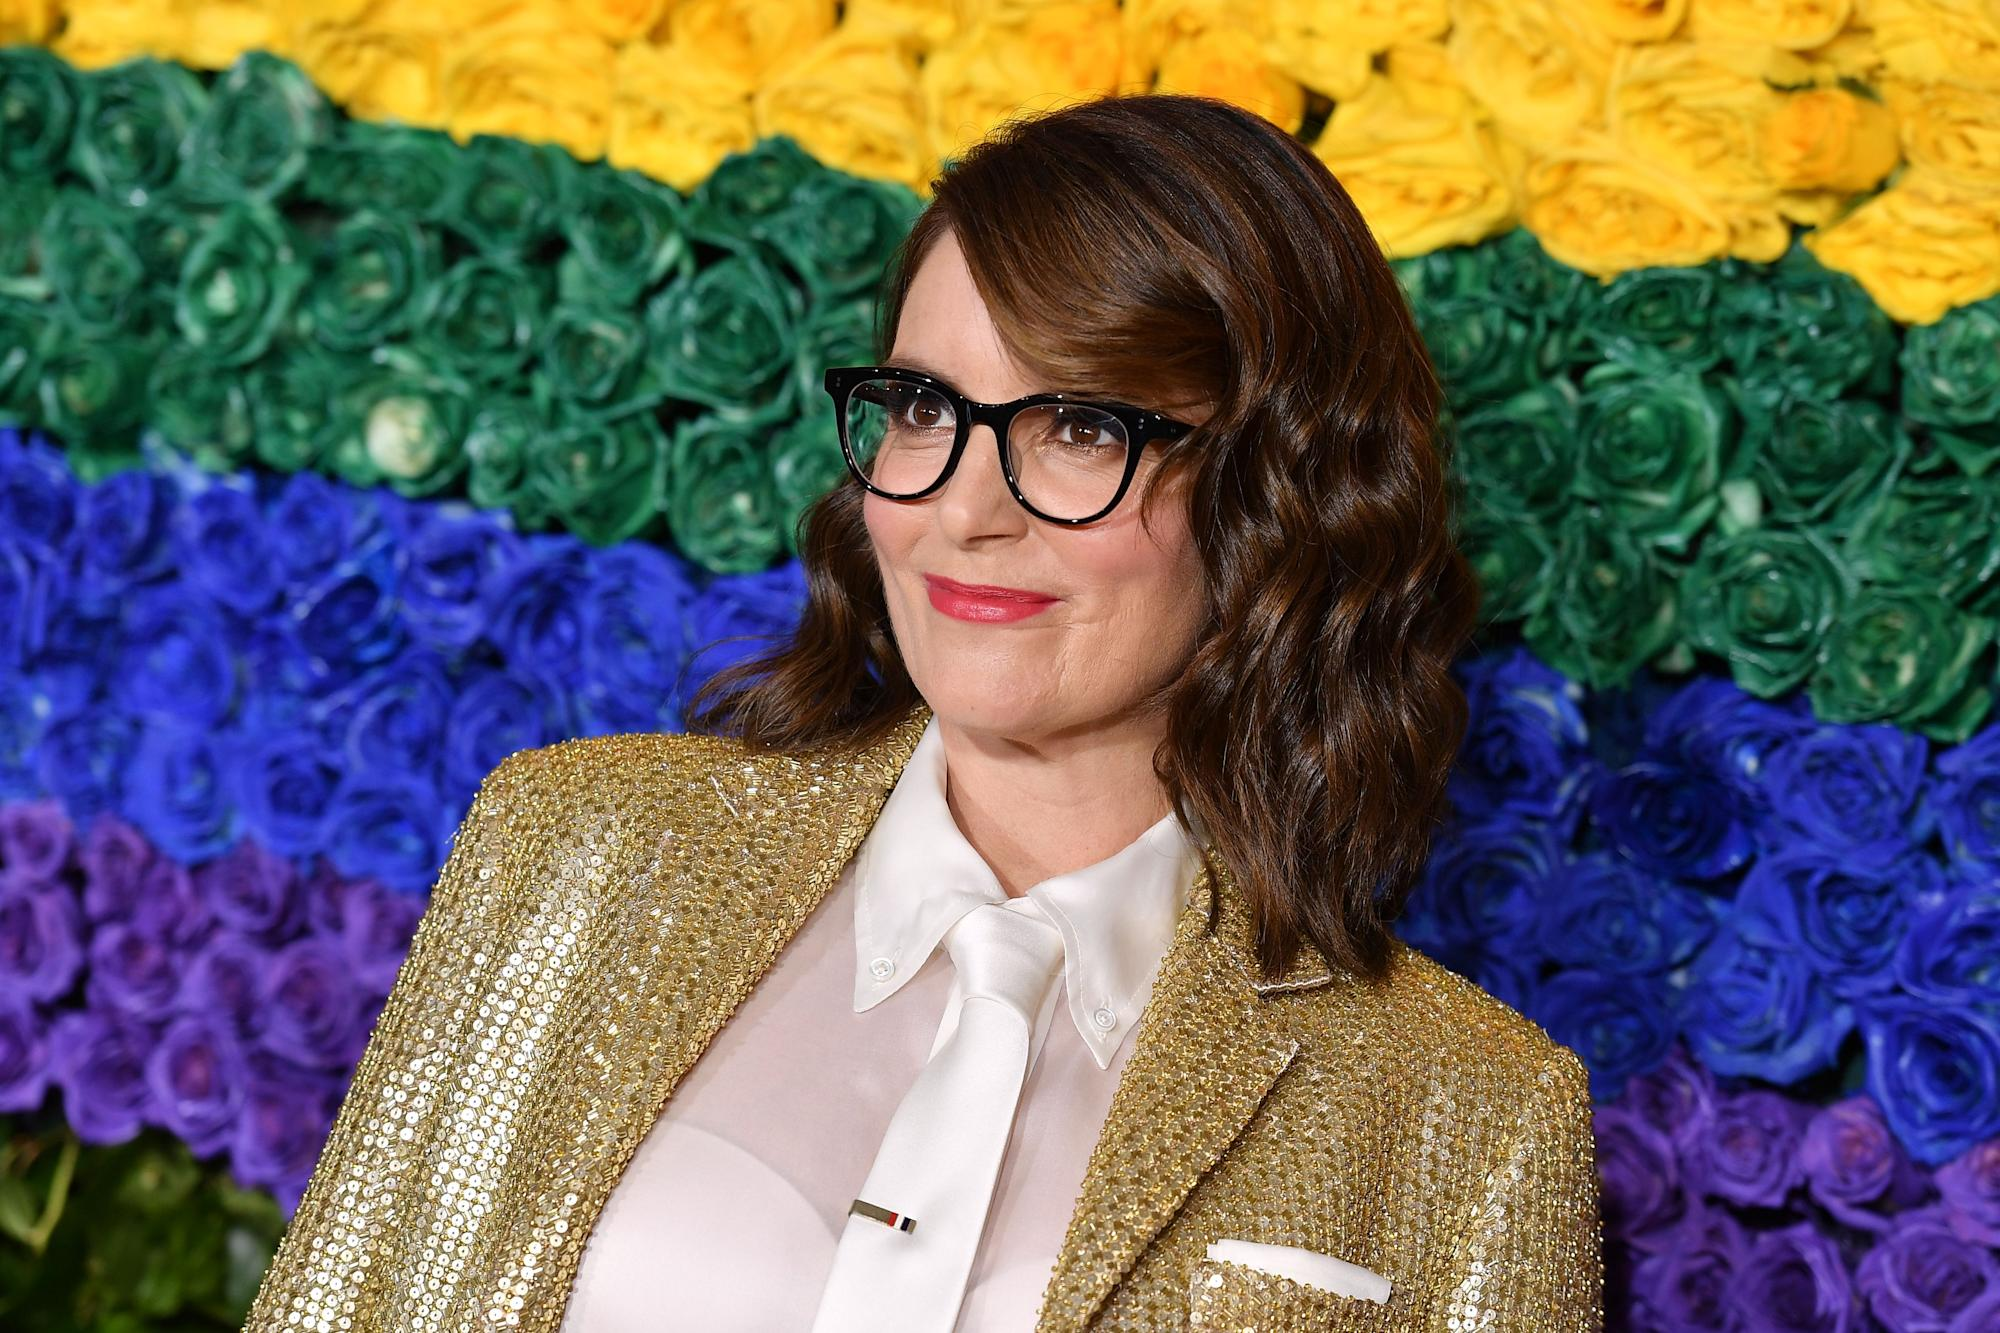 Tina Fey won't talk politics at Sunday's Golden Globes: 'That doesn't seem like a venue for political jokes'